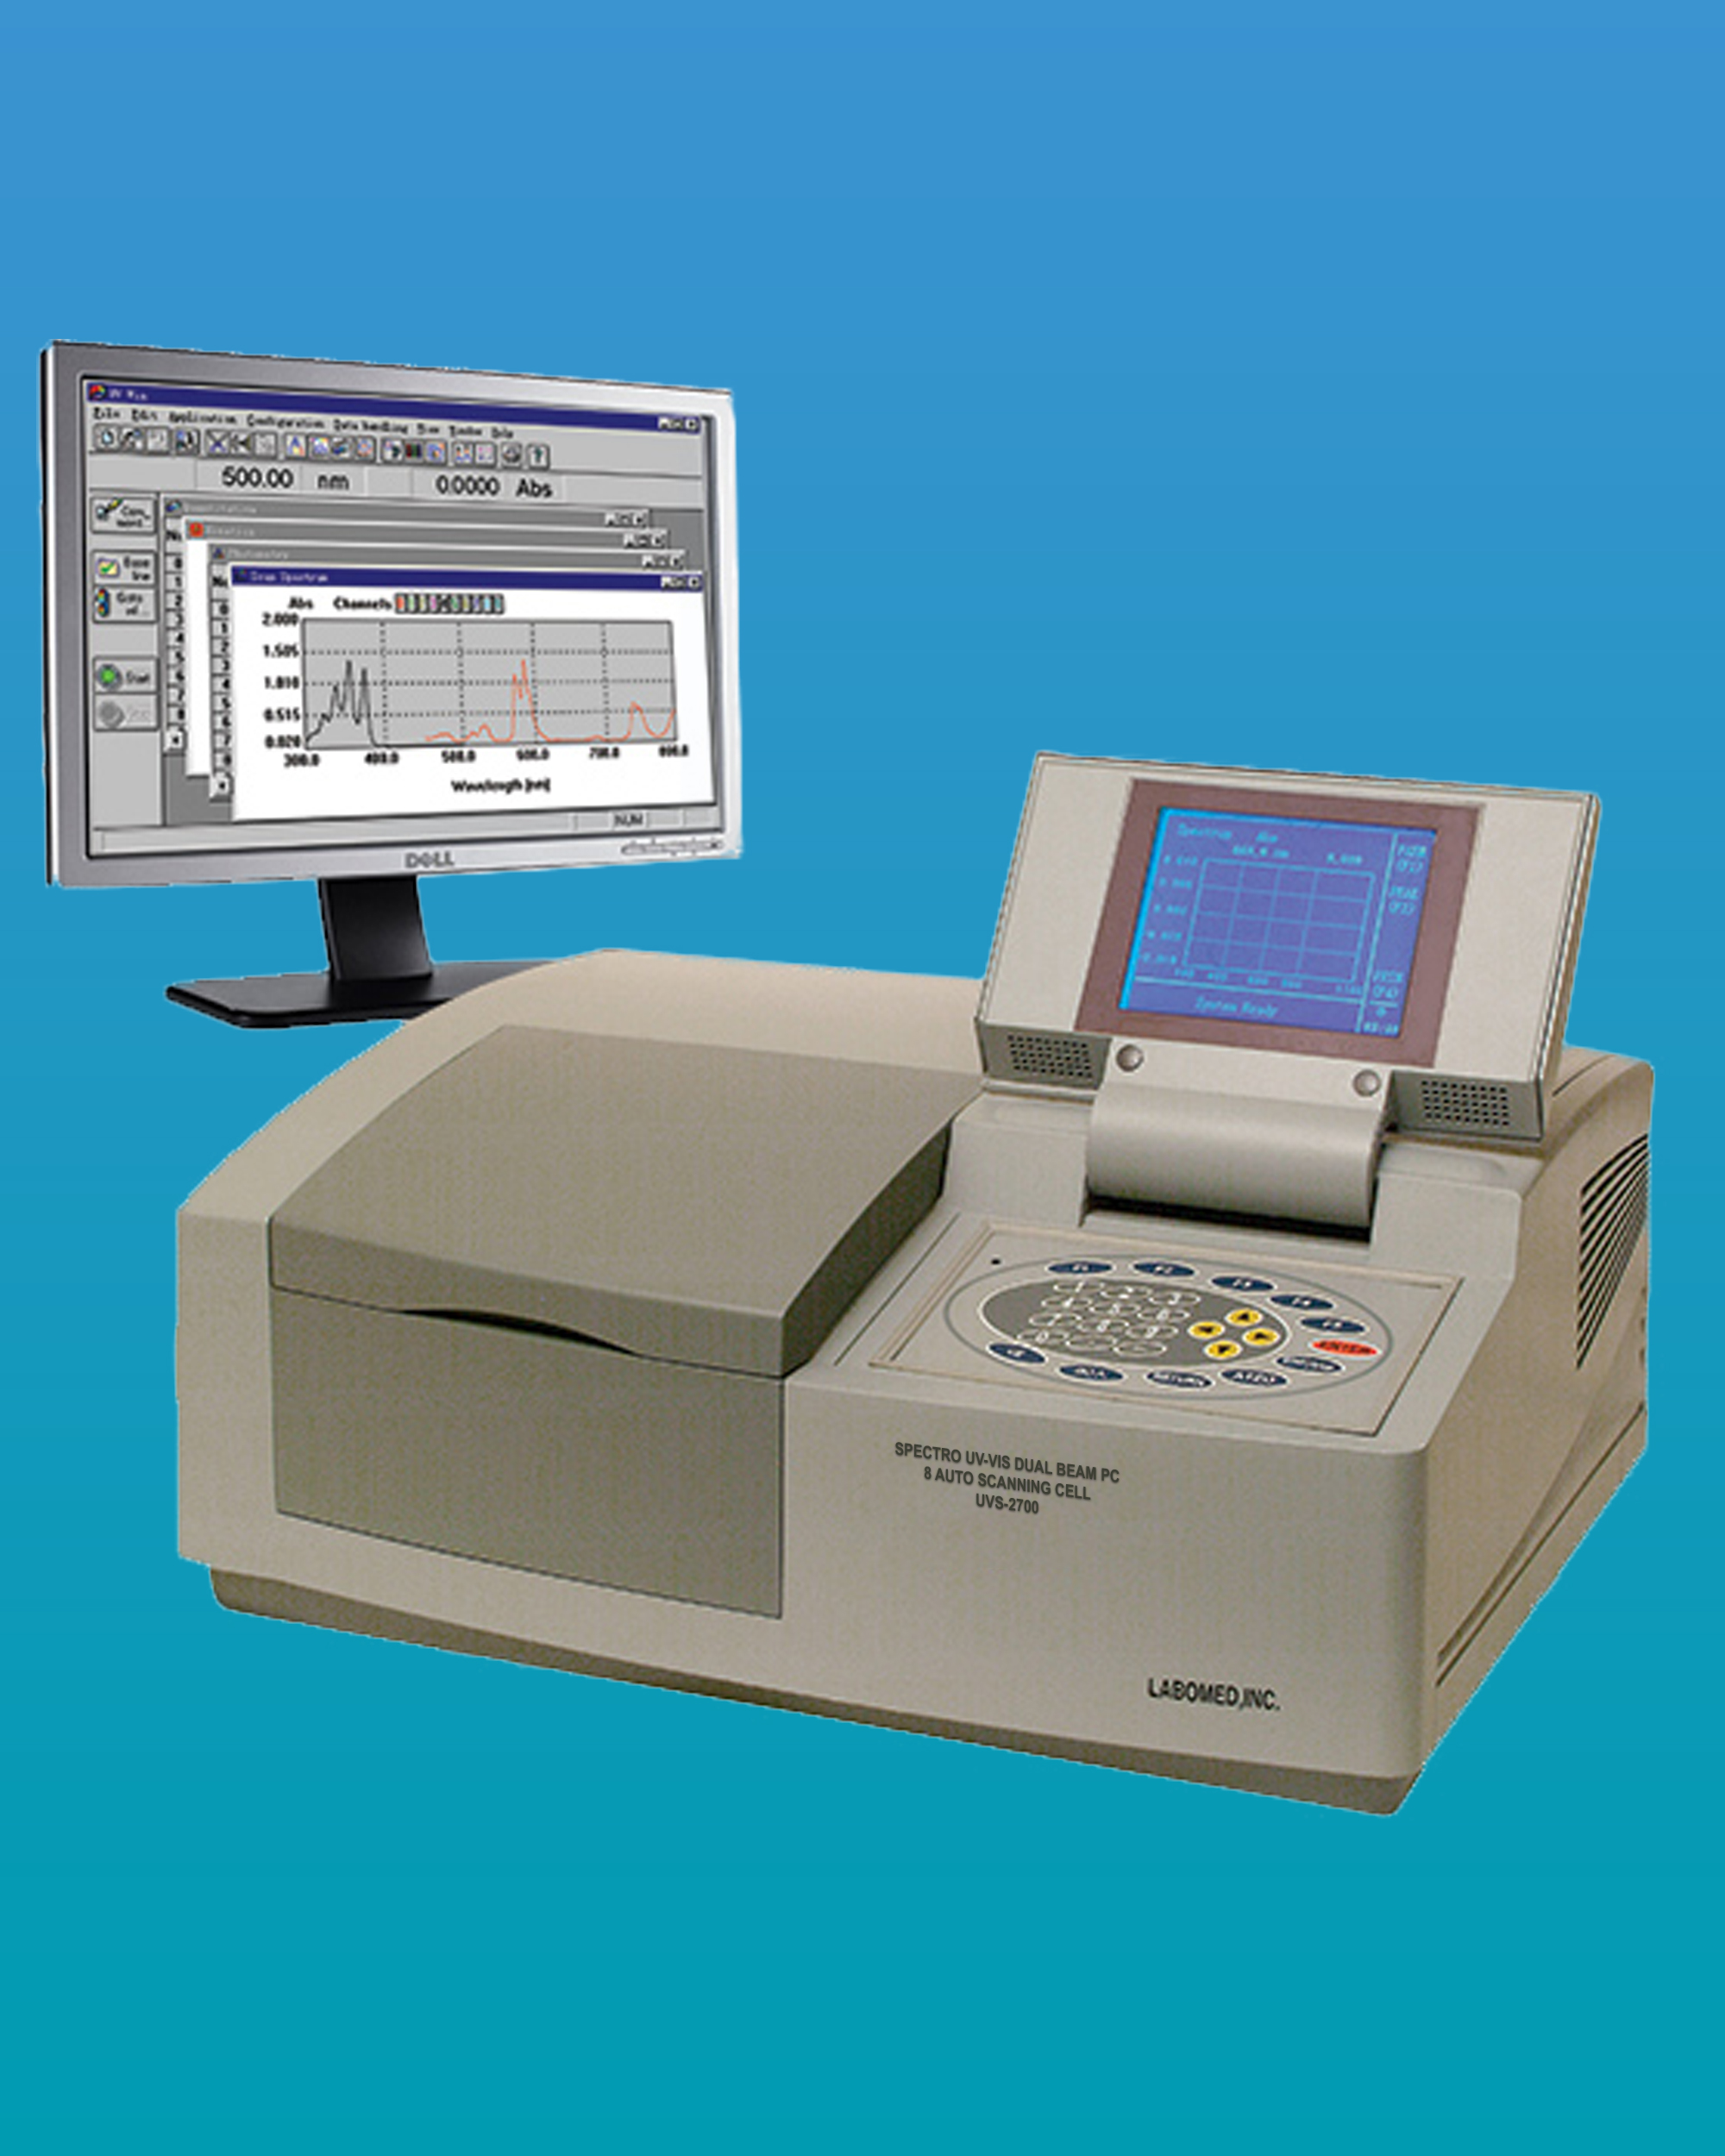 [UVS-2700] UV-Vis Spectrophotometer Scanning System w/ 8 Automatic Cell Changer Spectro